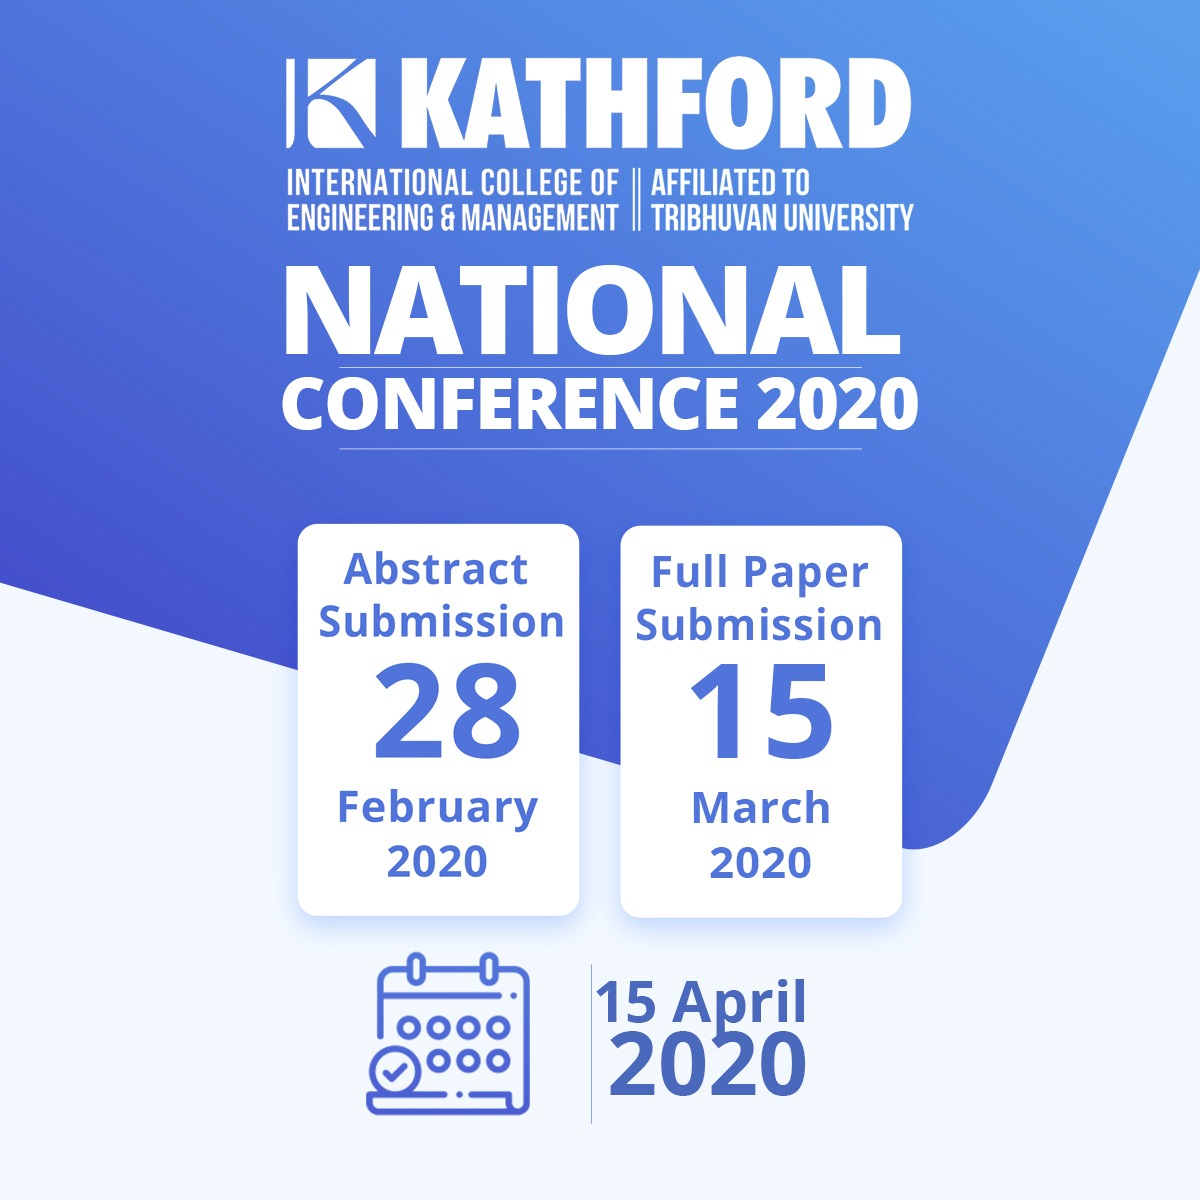 KATHFORD NATIONAL CONFERENCE 2020 ANNOUNCED